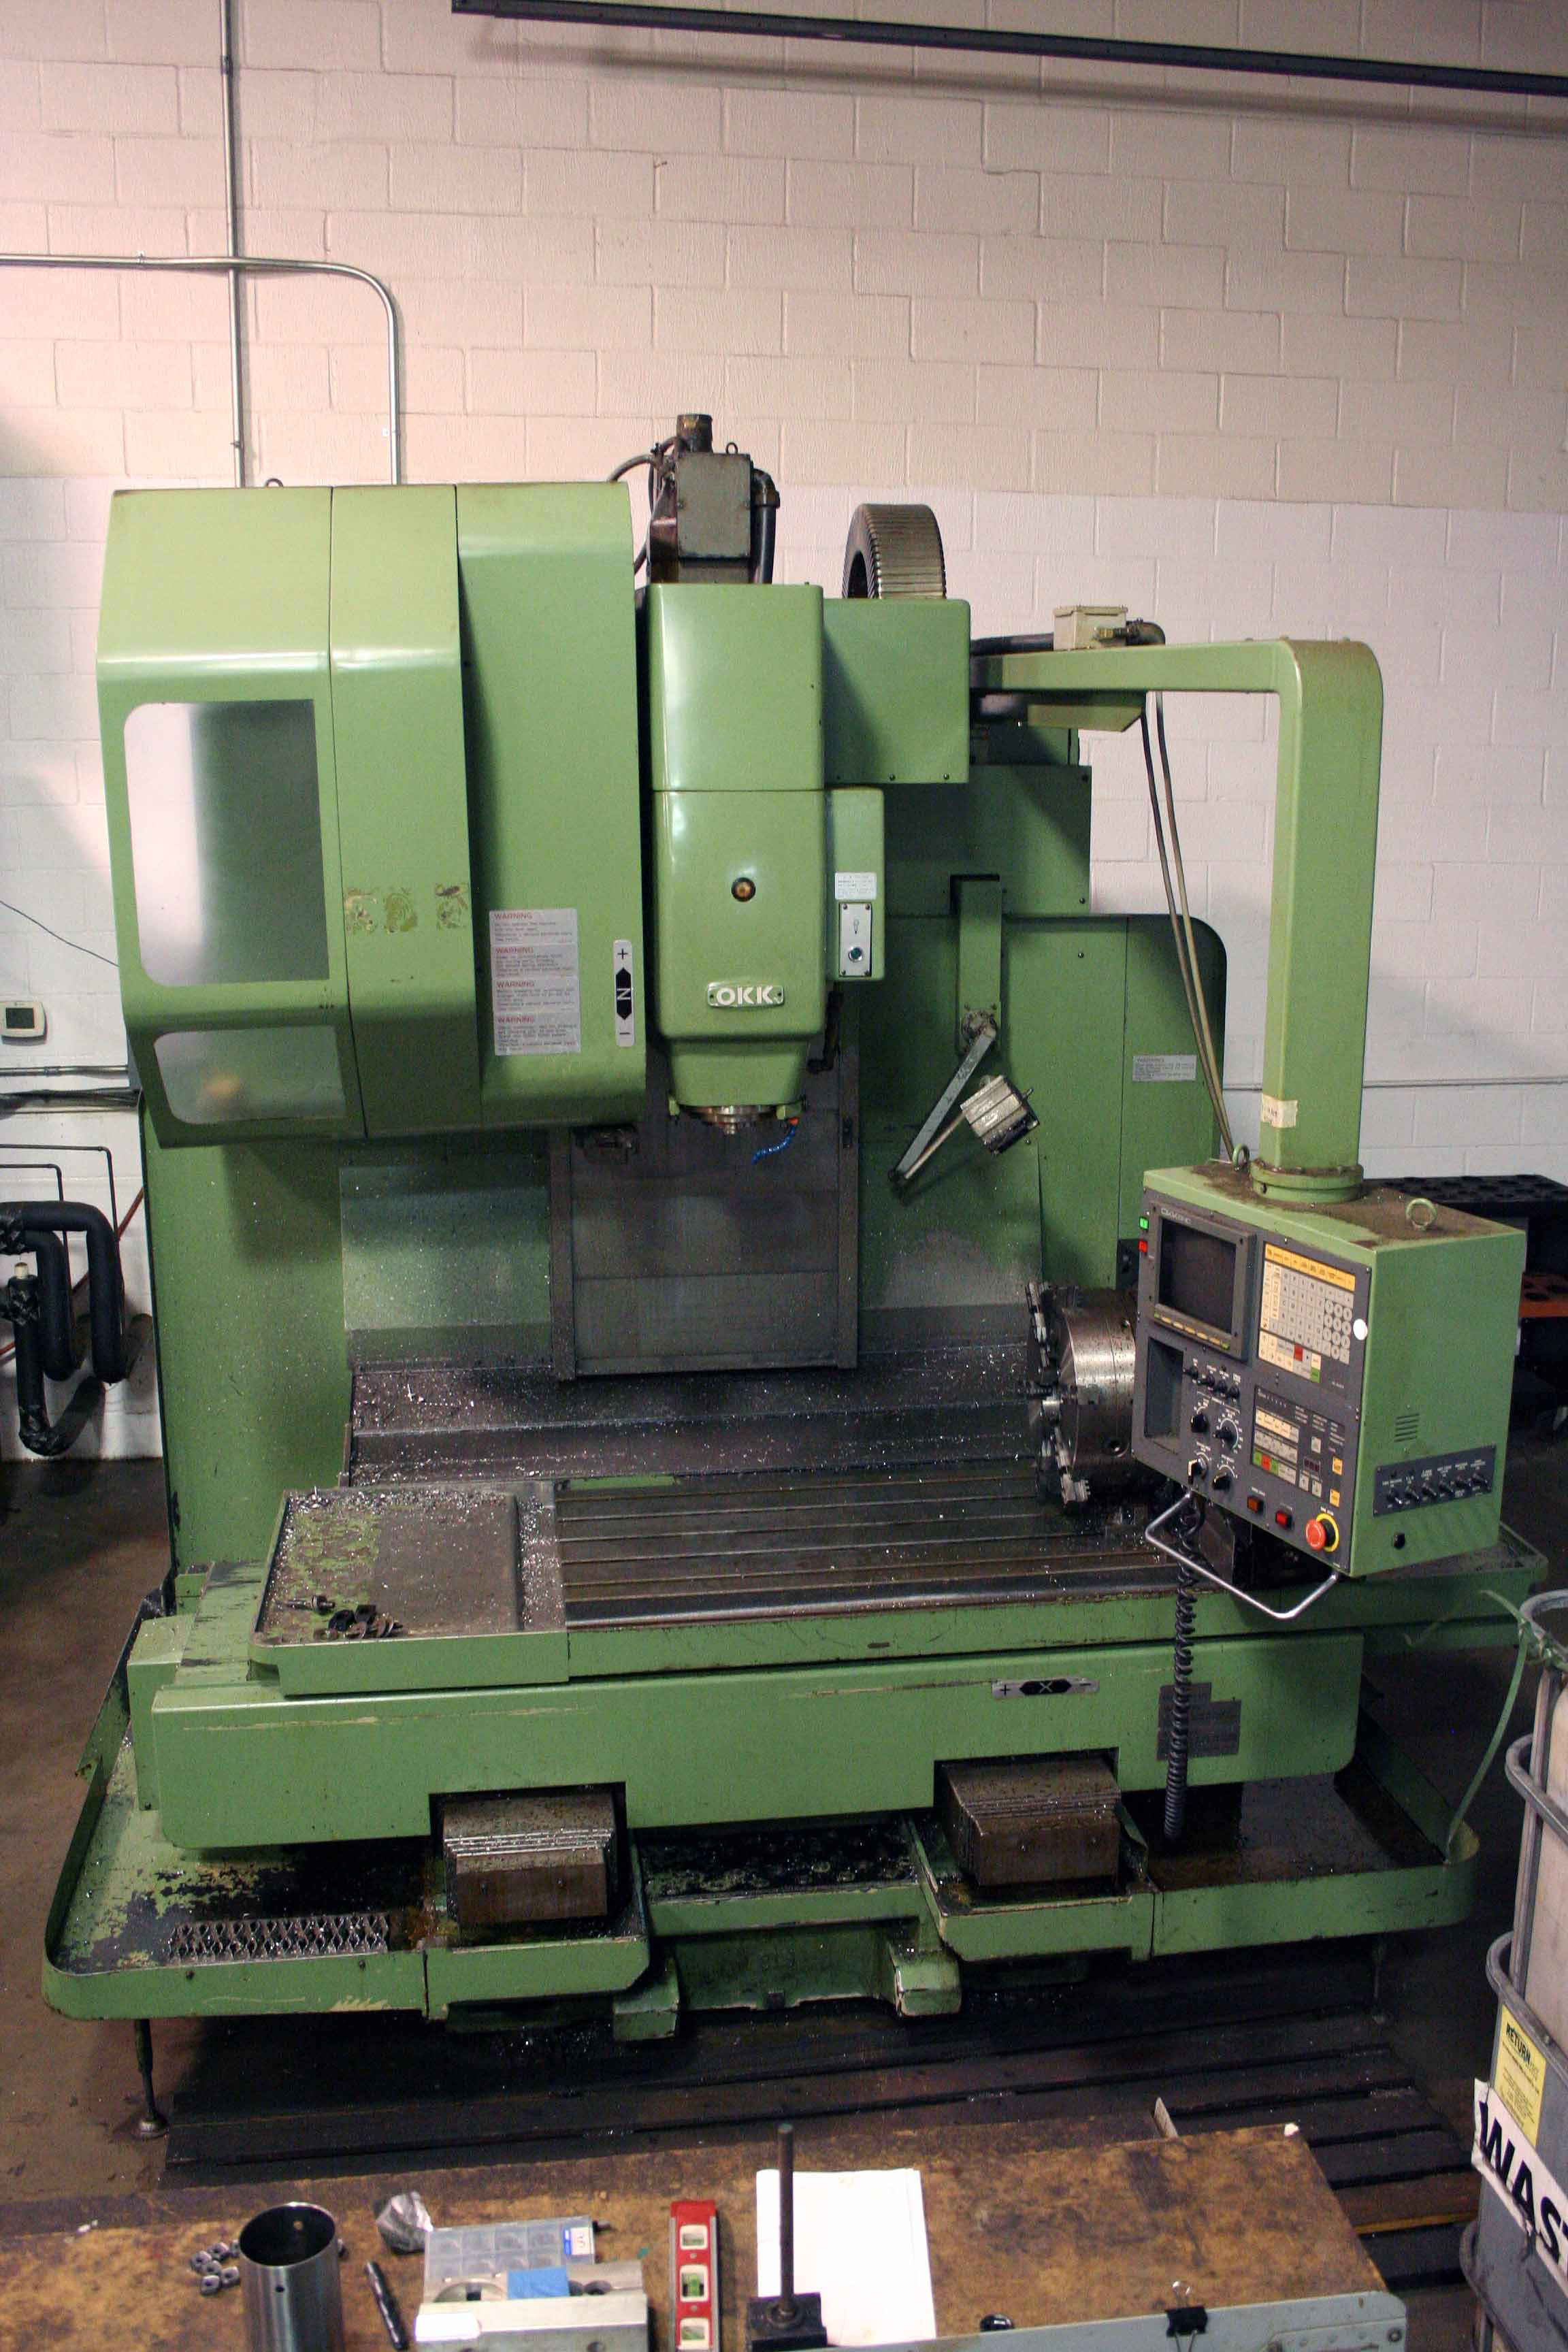 "Lot 2 - CNC VERTICAL MACHINING CENTER, OKK MDL. MCV550, (est.) new 1993, 41"" x 21"" table, 30 pos. ATC, CAT-"